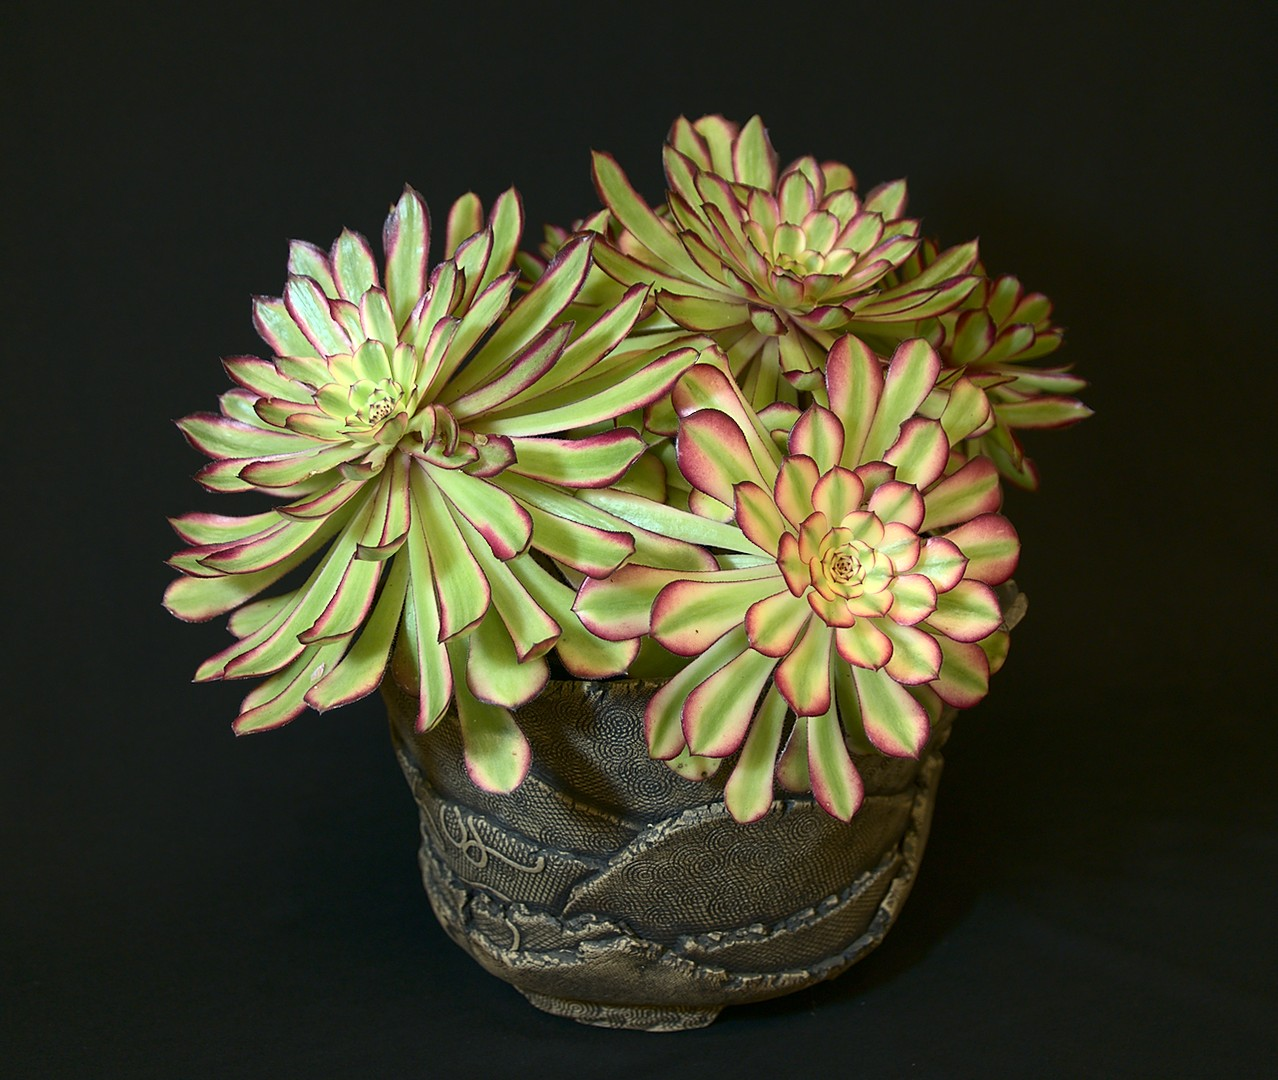 SCCSS 2019 March - Winner Intermediate Succulent - Jade Neely - Aeonium 'Mardi Gras'